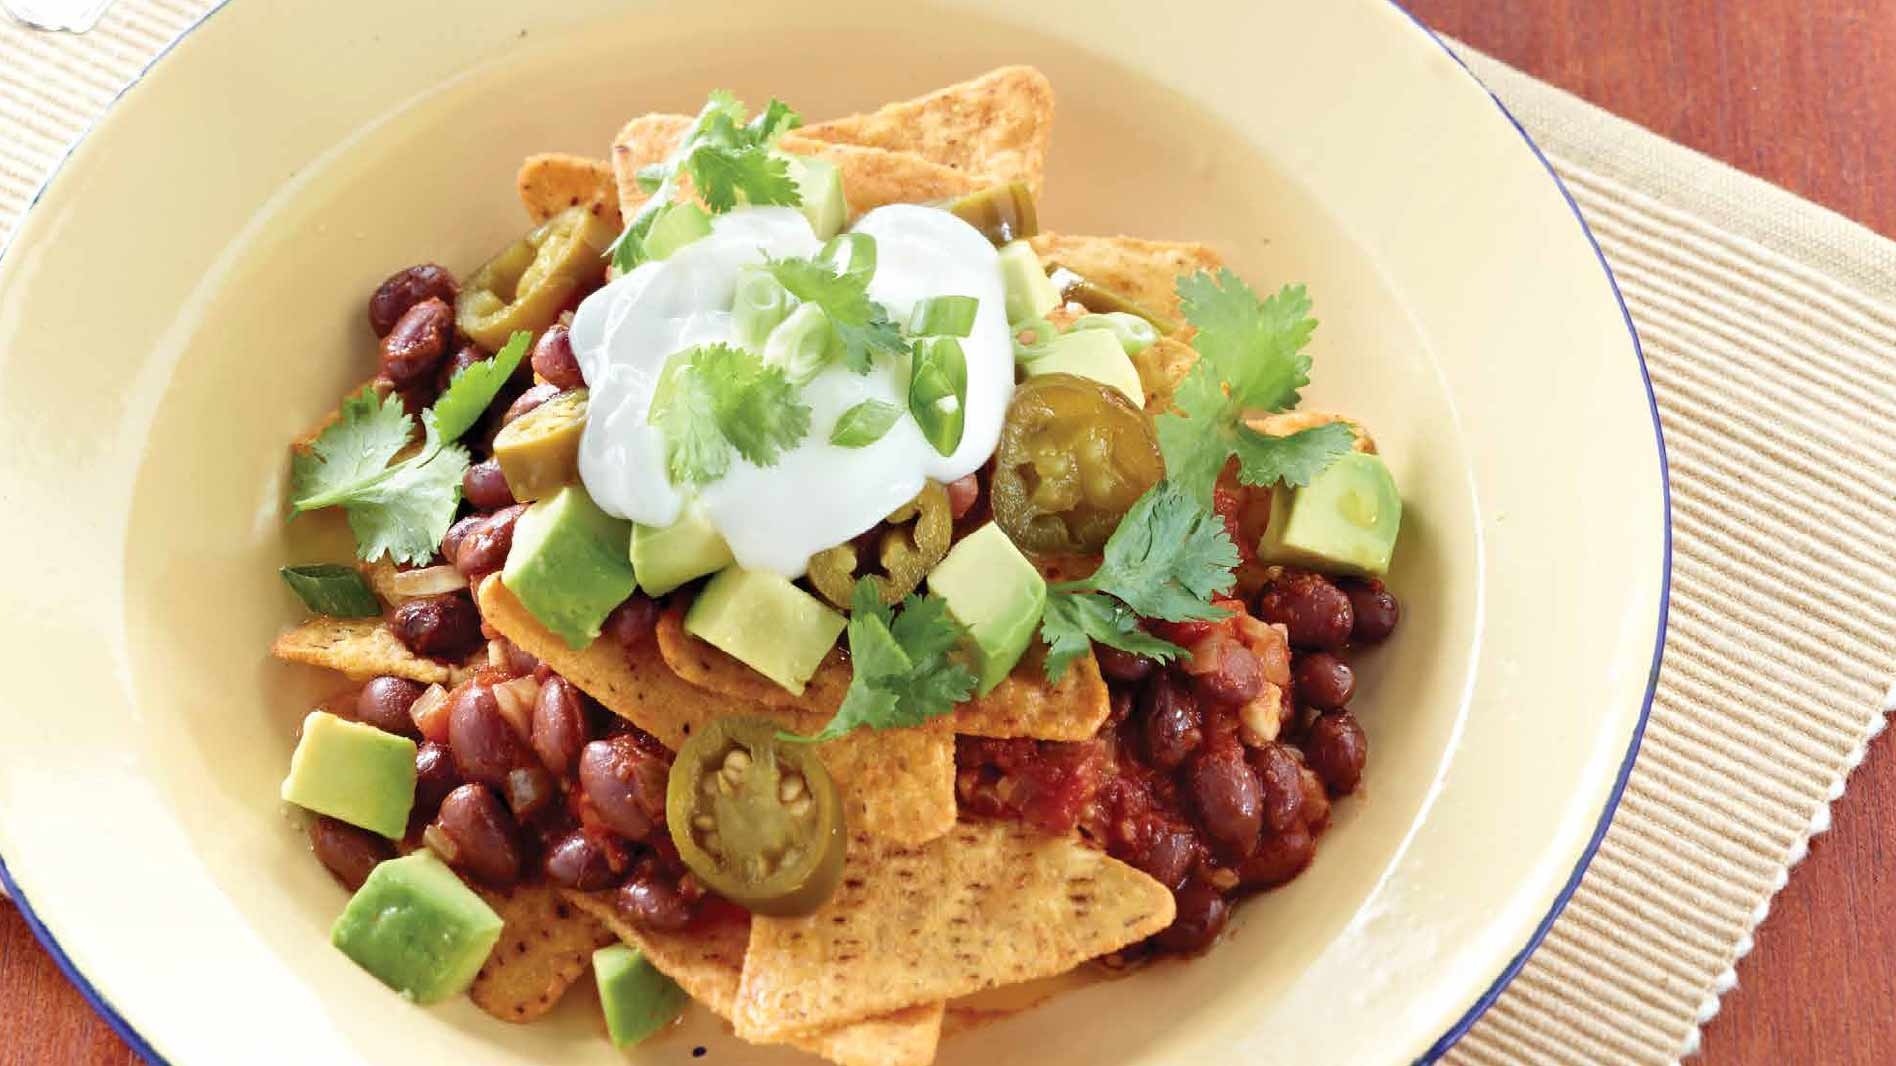 Spicy Vegetarian Nachos with Avocado, Jalapenos and Beans